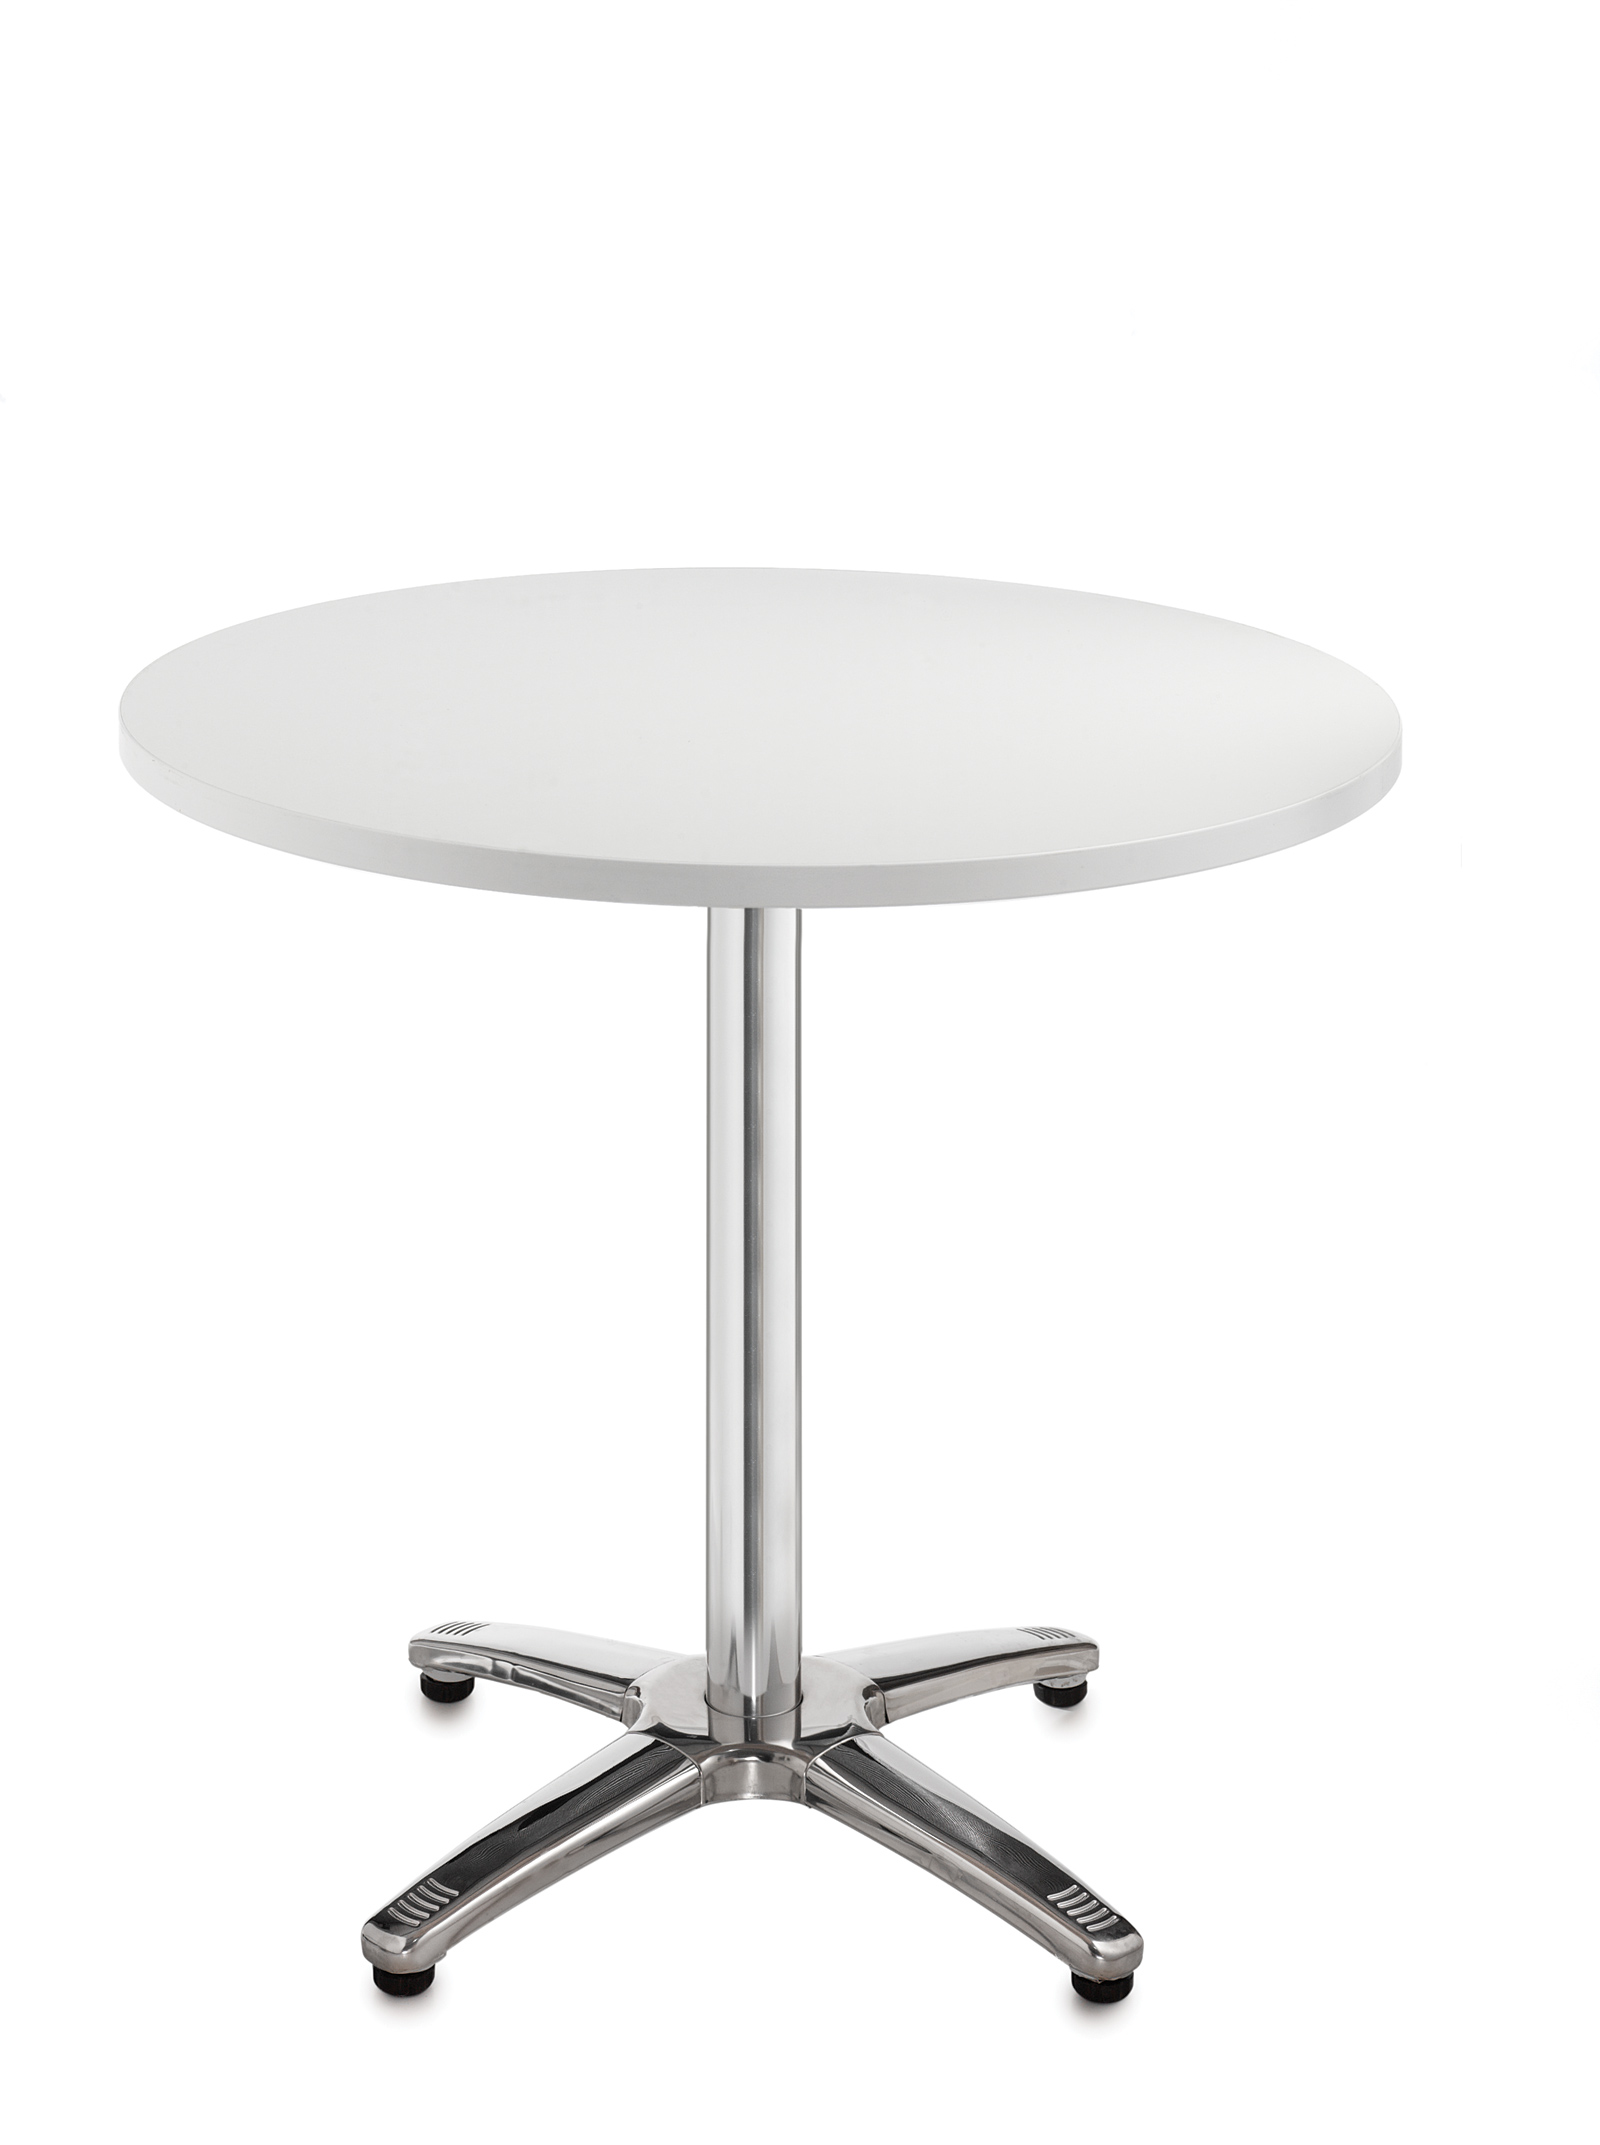 Image for Roma Circular Table With 4 Leg Base